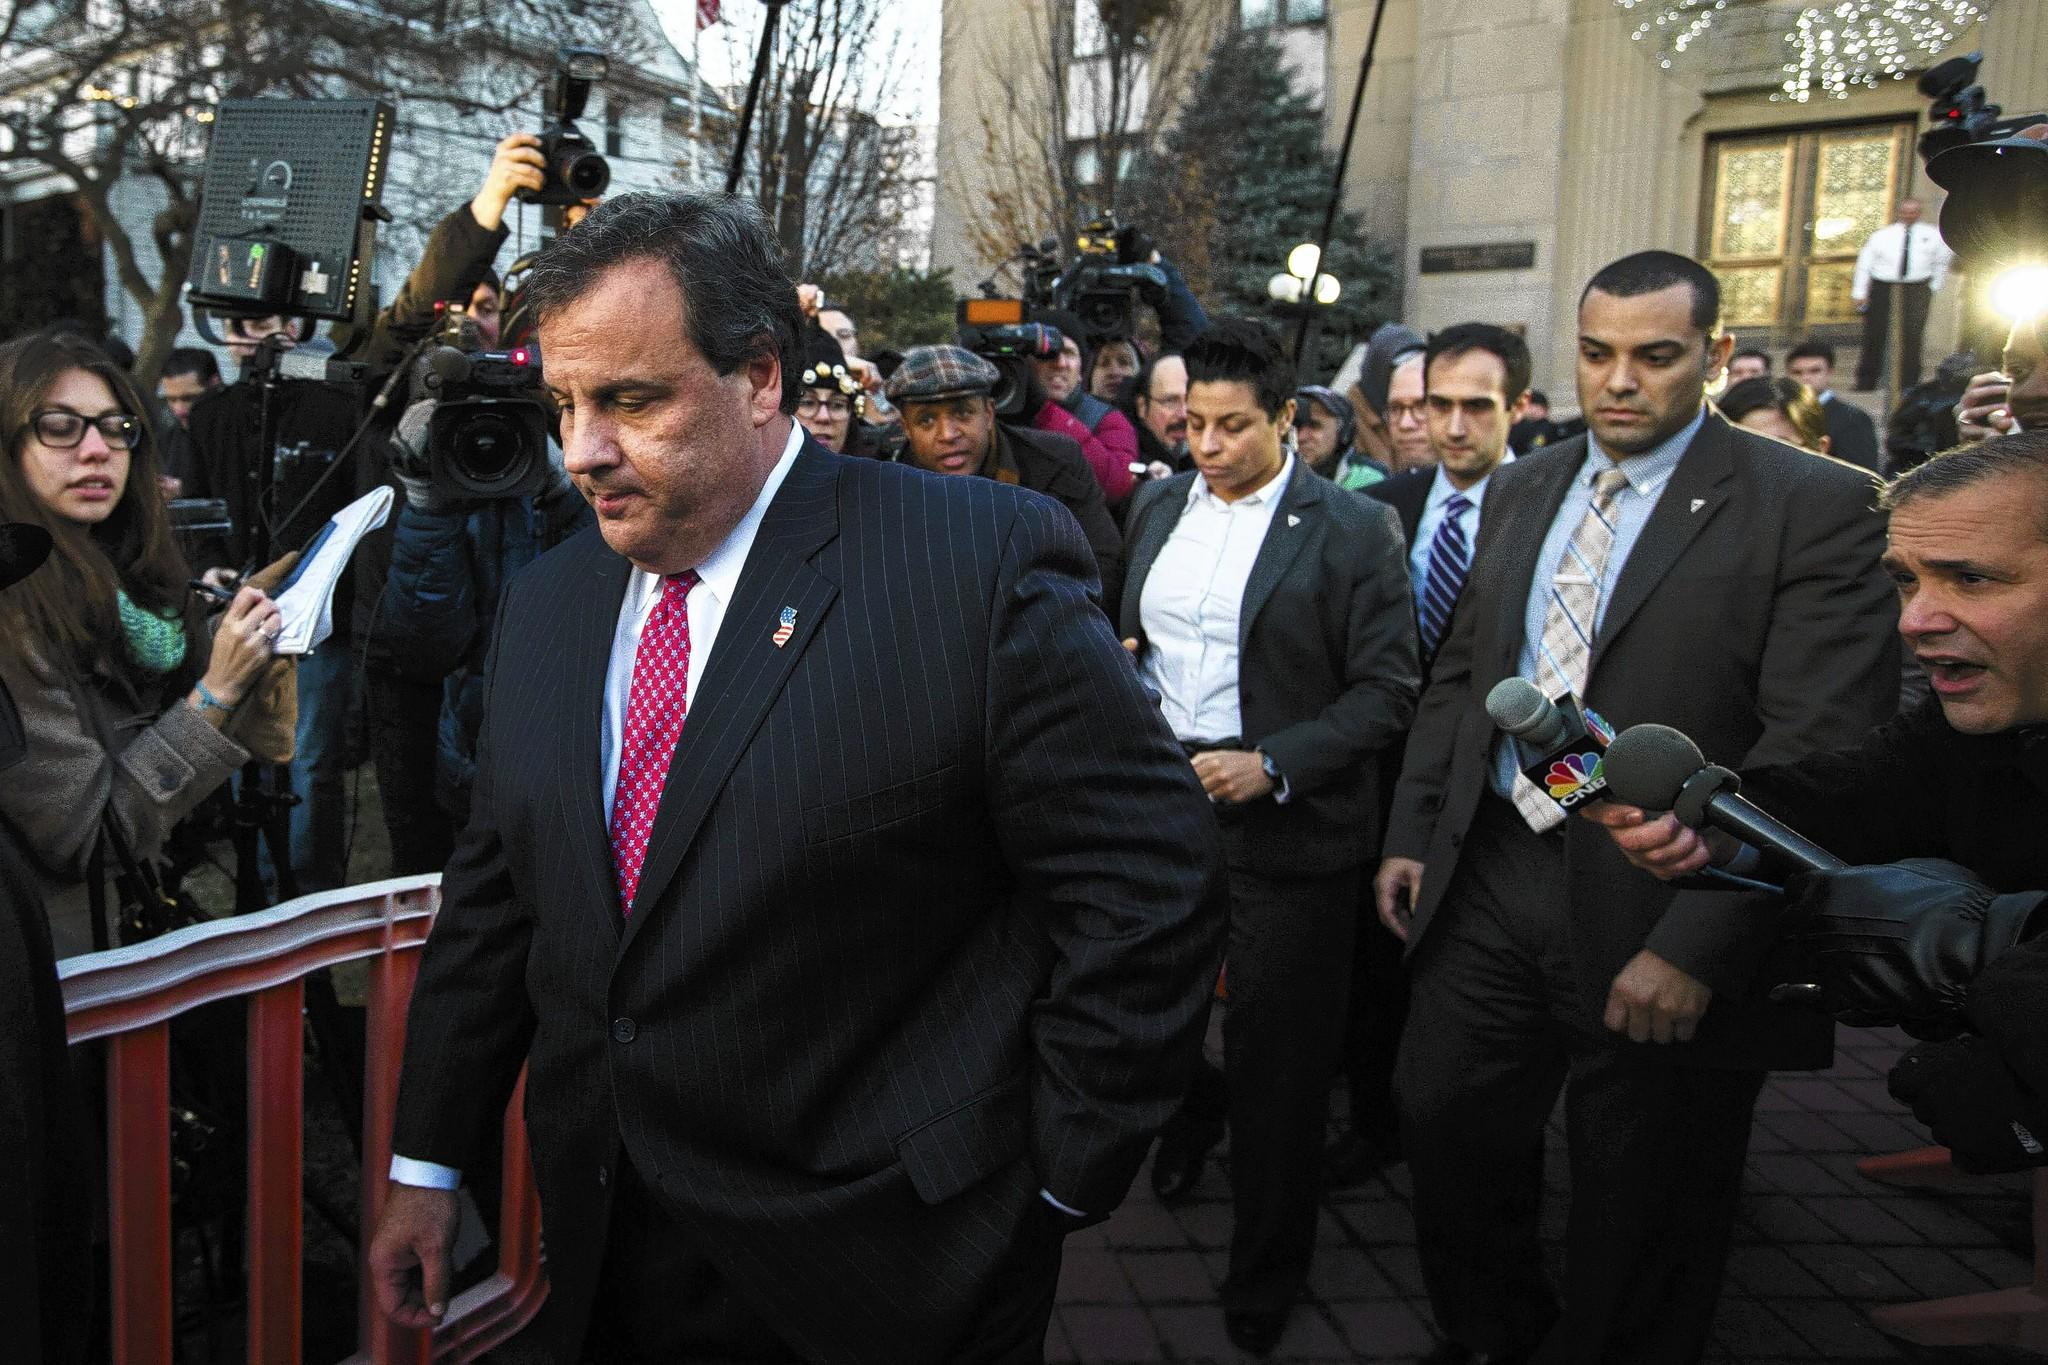 New Jersey Gov. Chris Christie, left, leaves City Hall in Fort Lee, N.J., after meeting Thursday with the city's Democratic mayor to apologize for a traffic snarl apparently caused by Christie's staff.